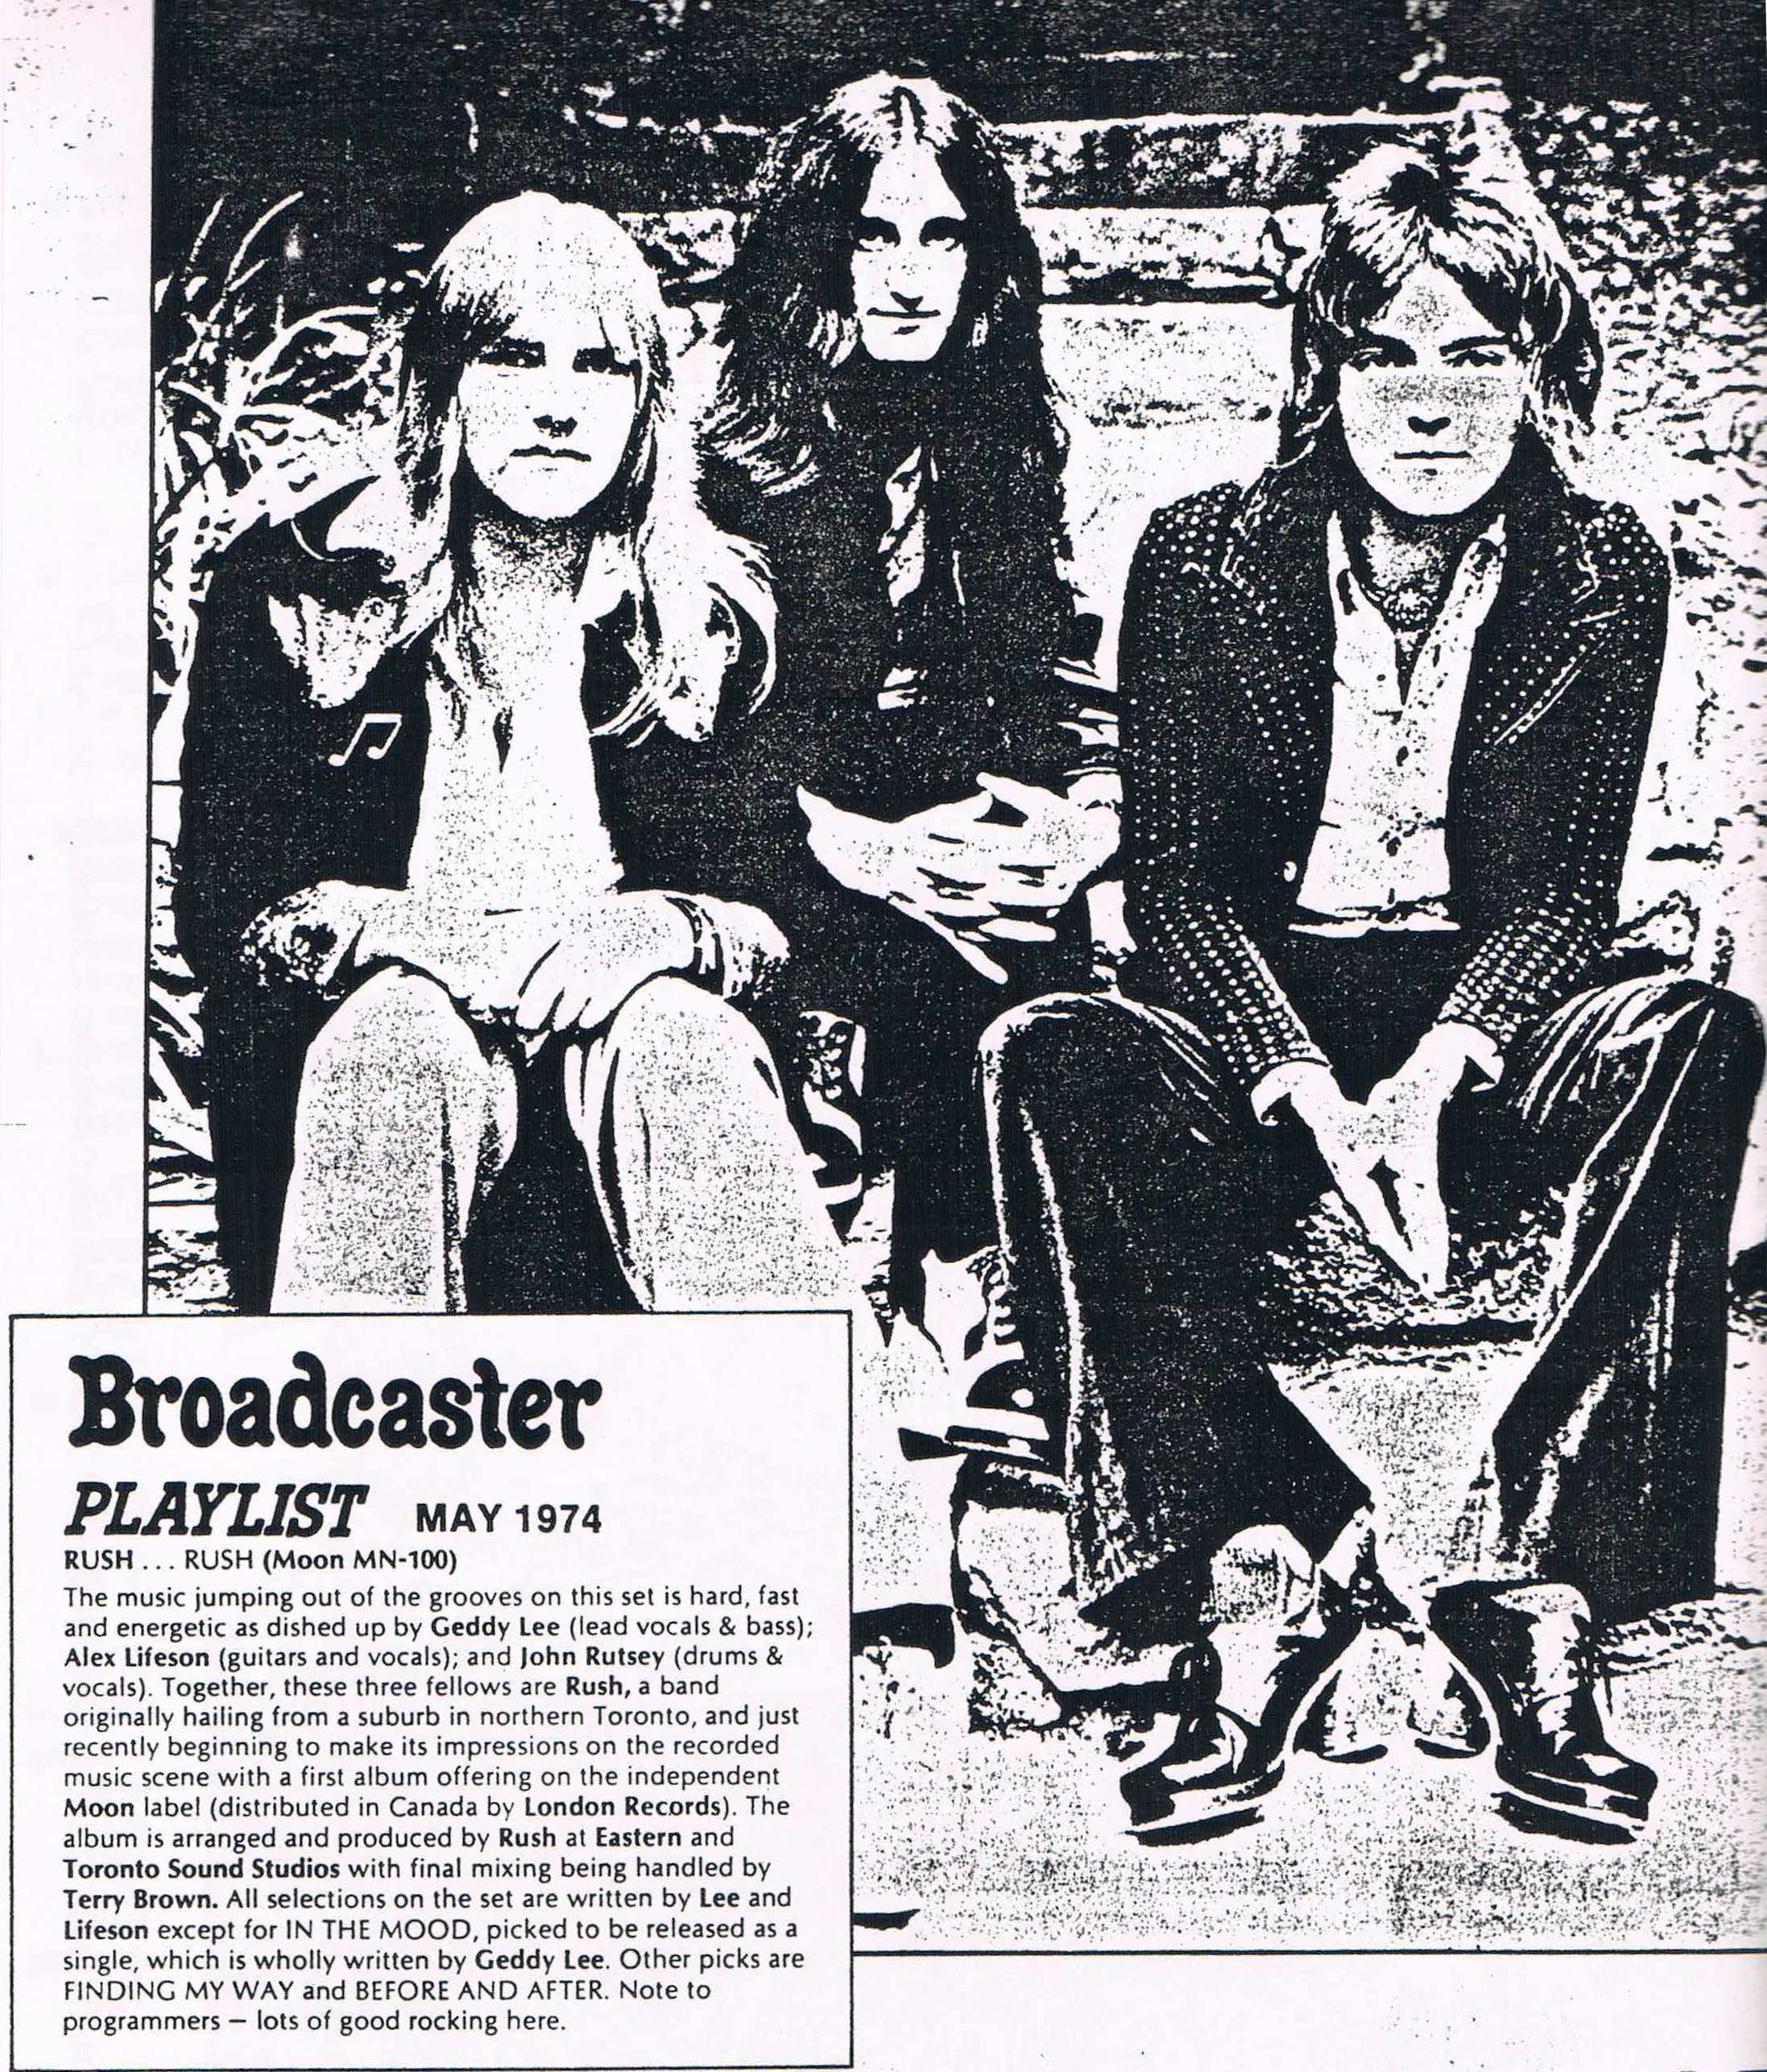 broadcaster-playlist-05.1974